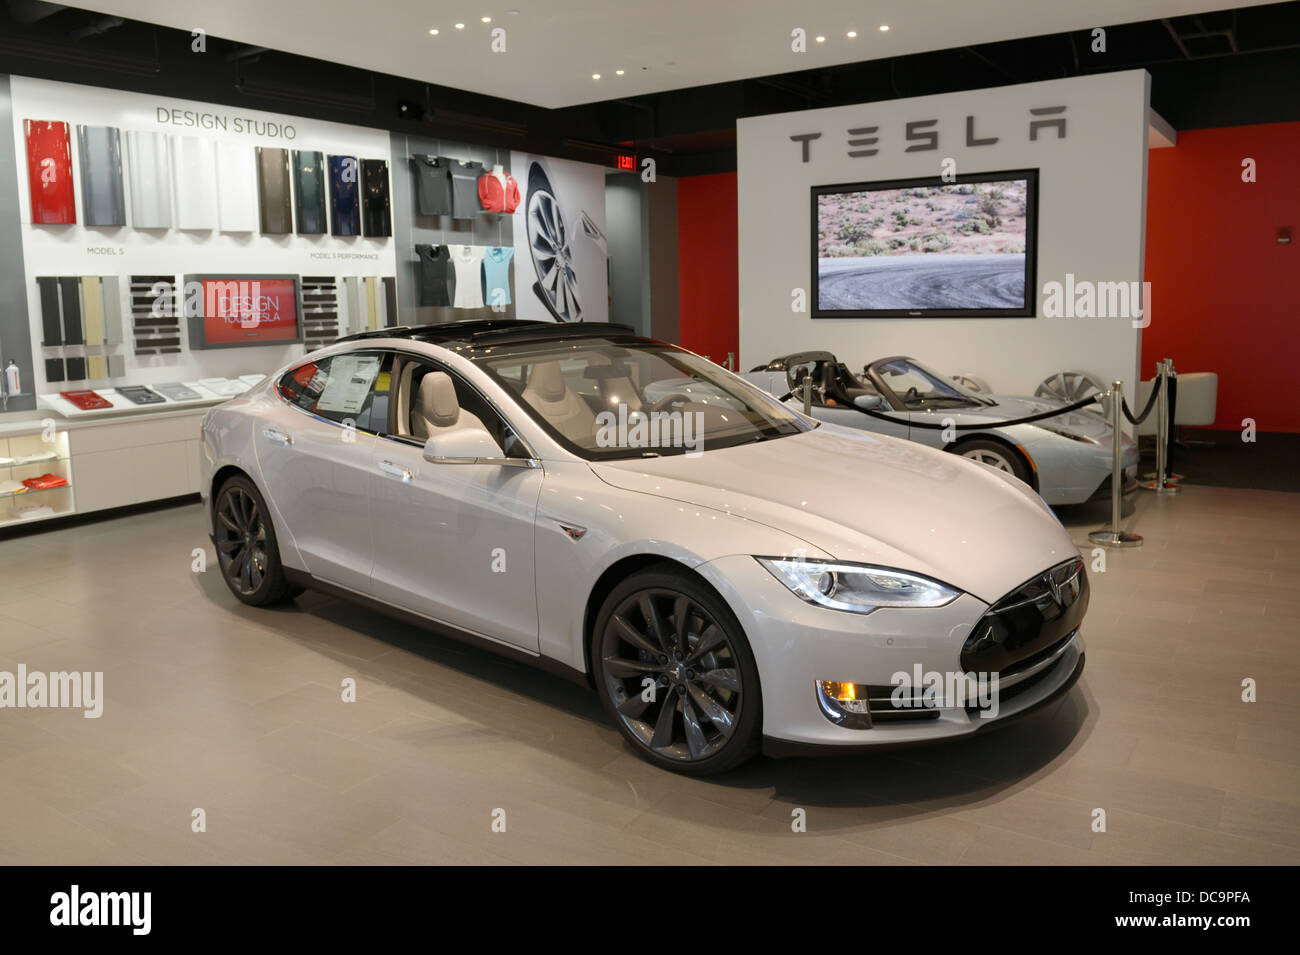 Stock photo tesla electric car dealer retail store in a shopping mall nj usa with model s sedan